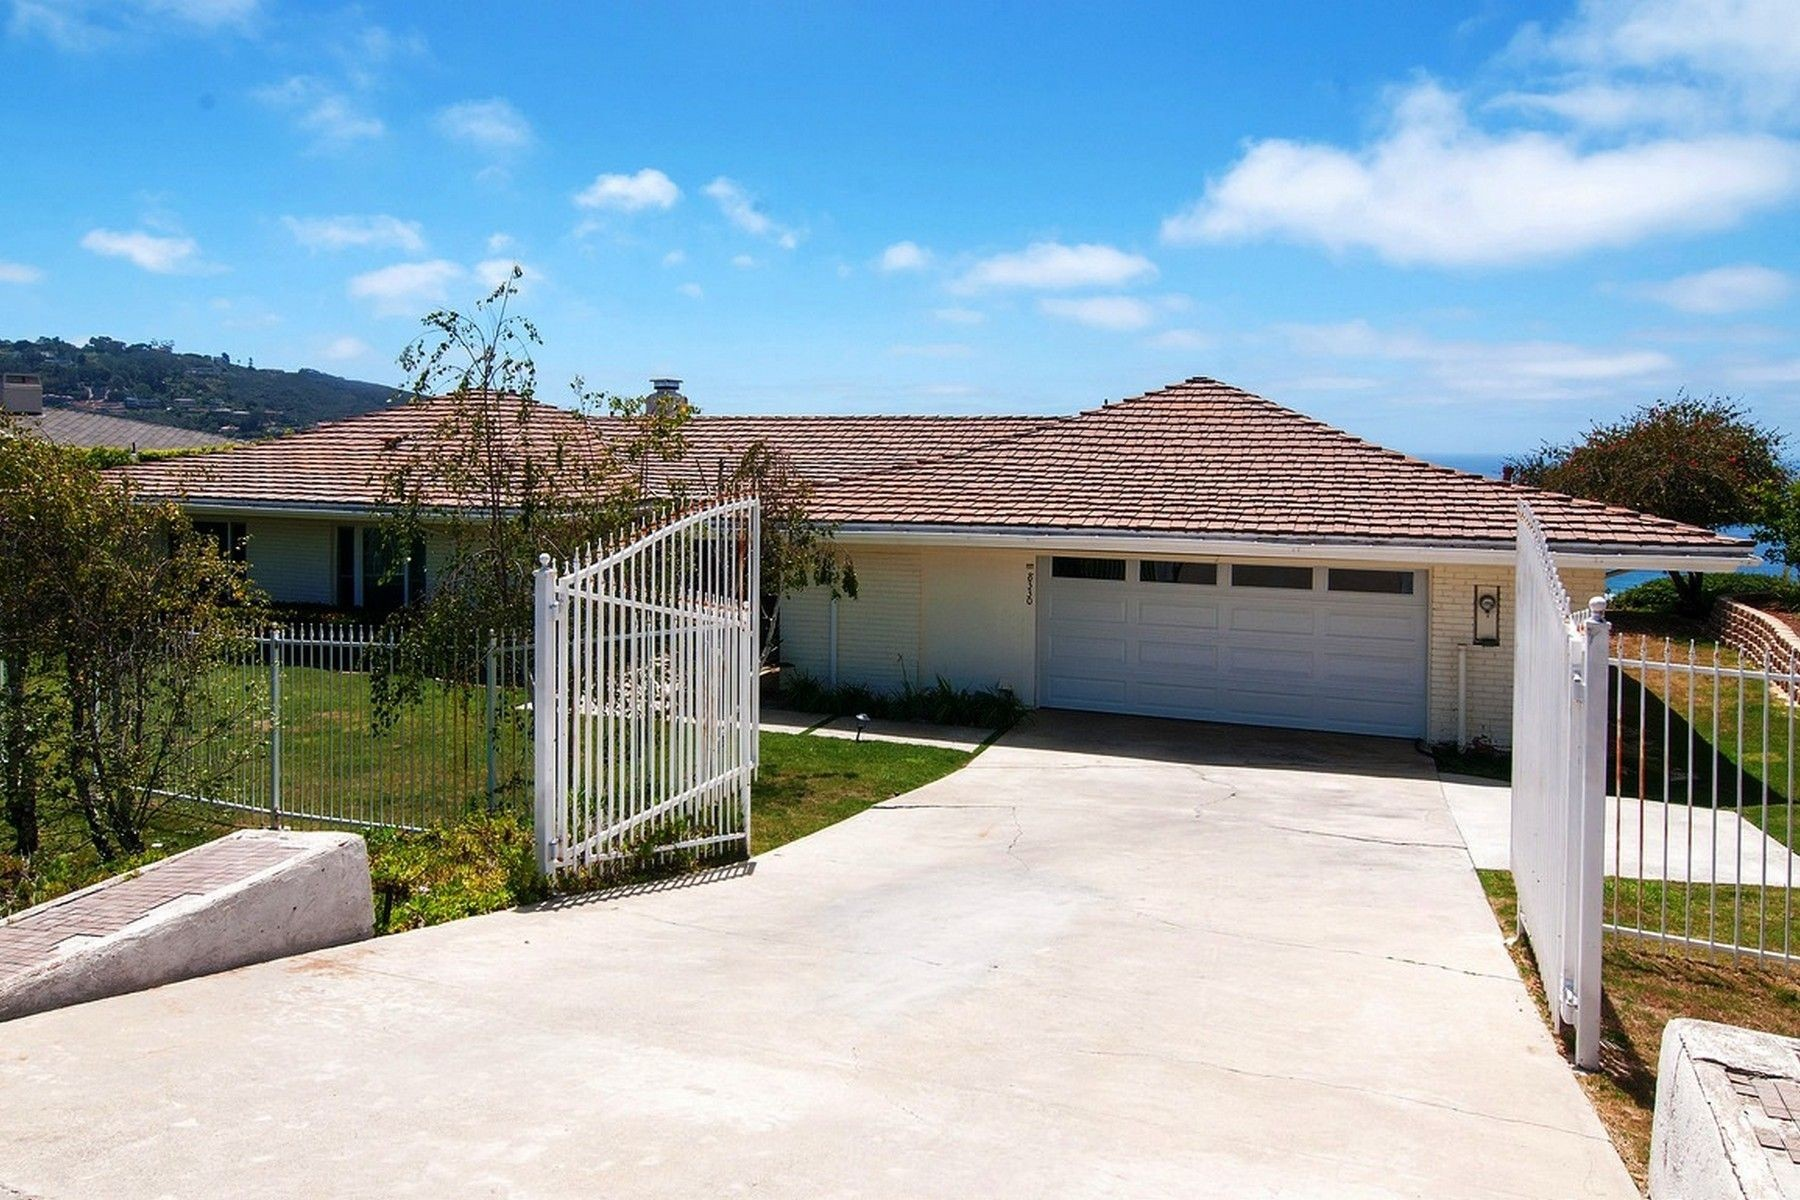 8330 prestwick dr san diego ca 92037 4 bedroom house for rent for